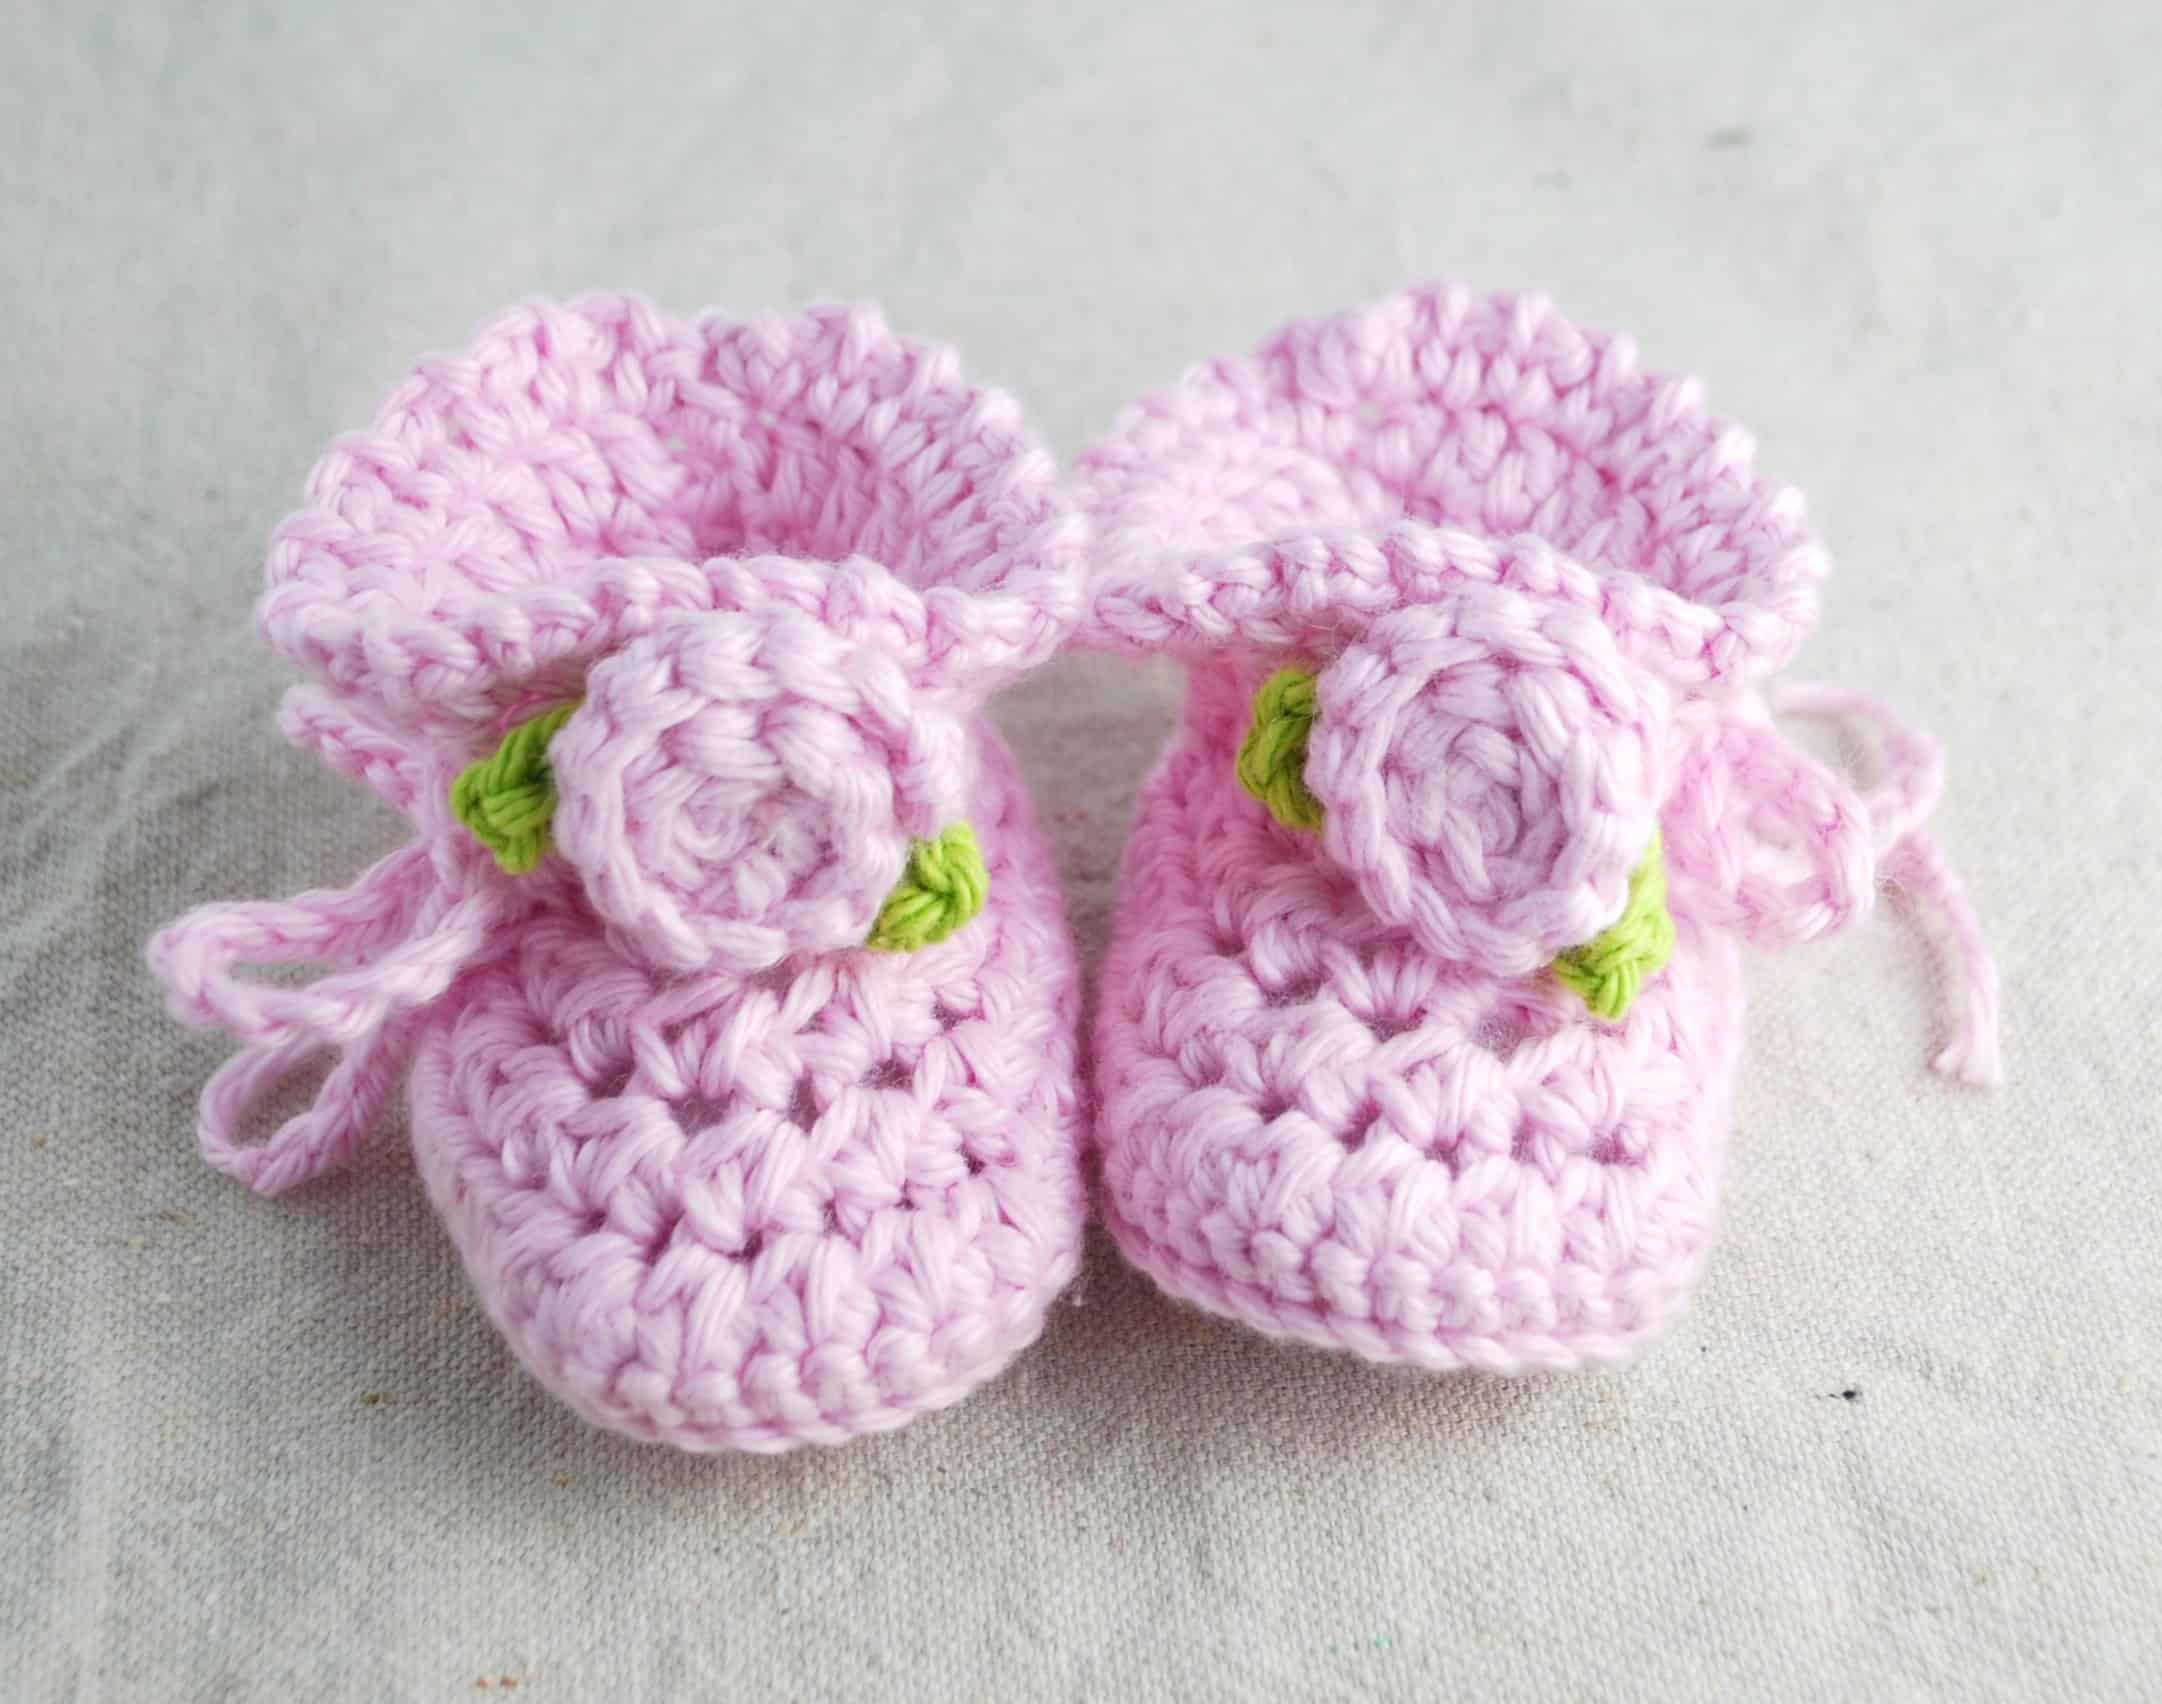 Free Crochet Baby Booties Fresh Crochet Baby Booties with Rosettes Creations by Kara Of Wonderful 49 Photos Free Crochet Baby Booties